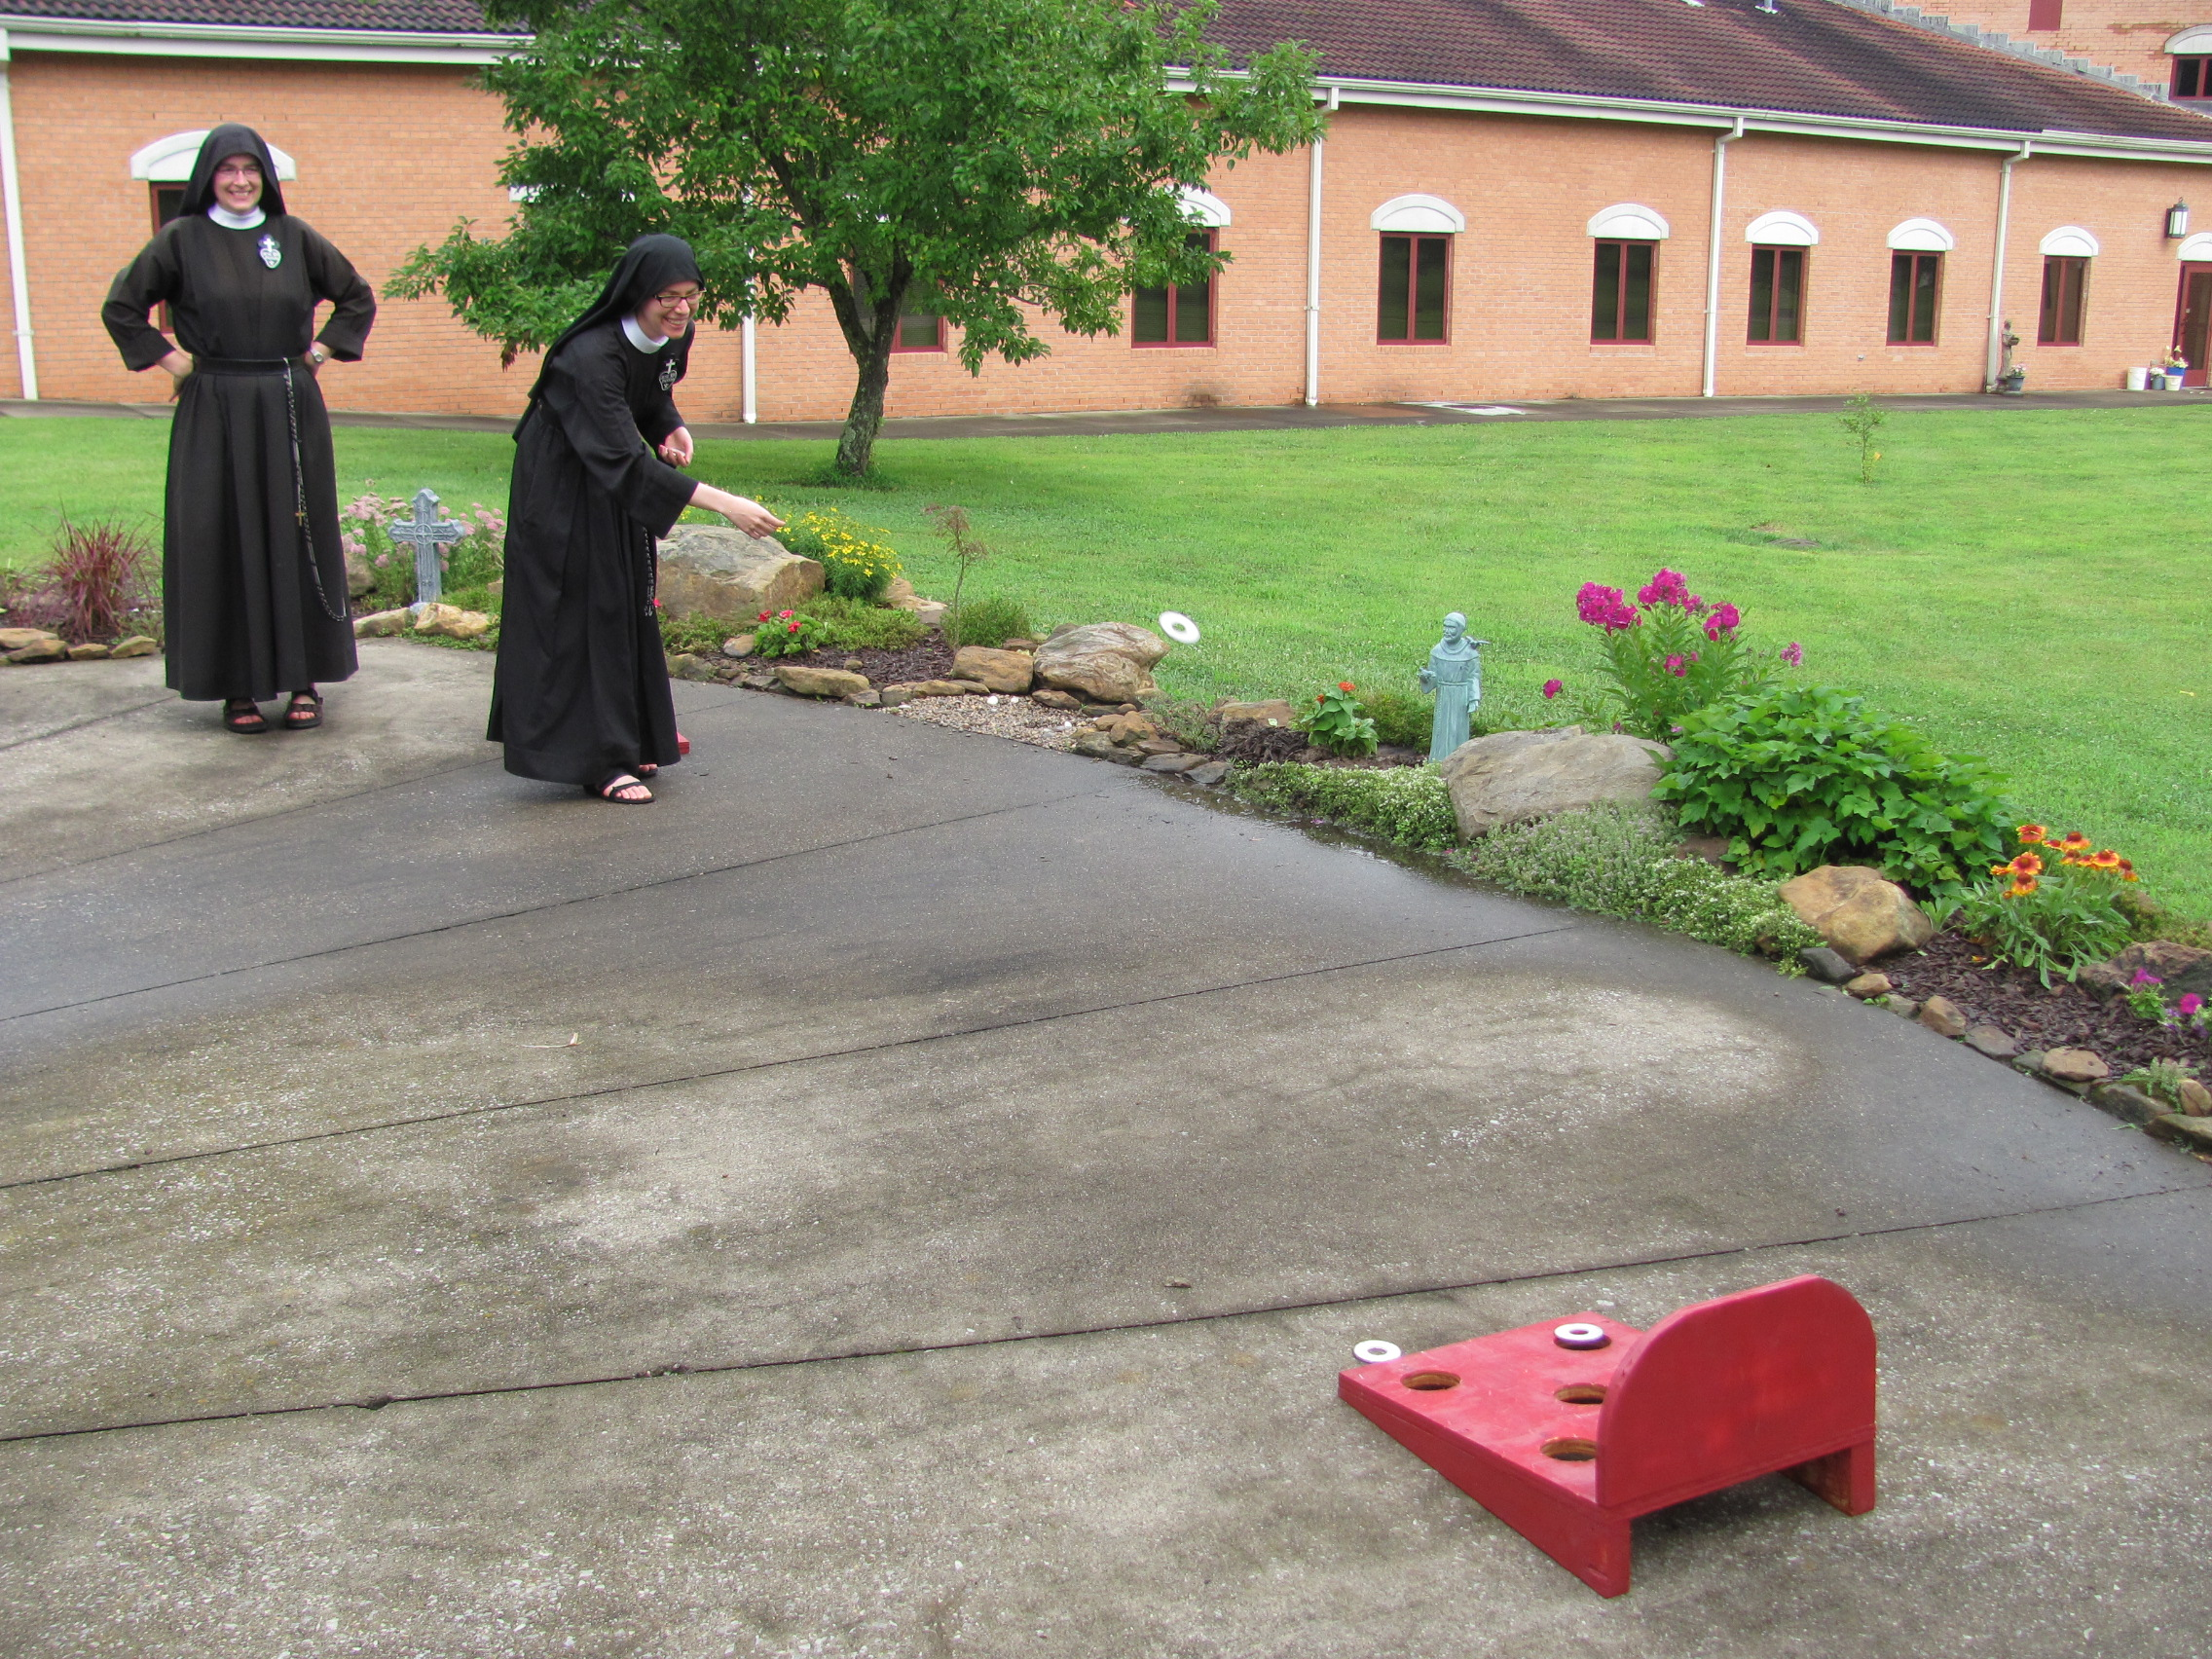 A rousing game of washers ensued.  Here's Sr. Maria Faustina showing off her throws.